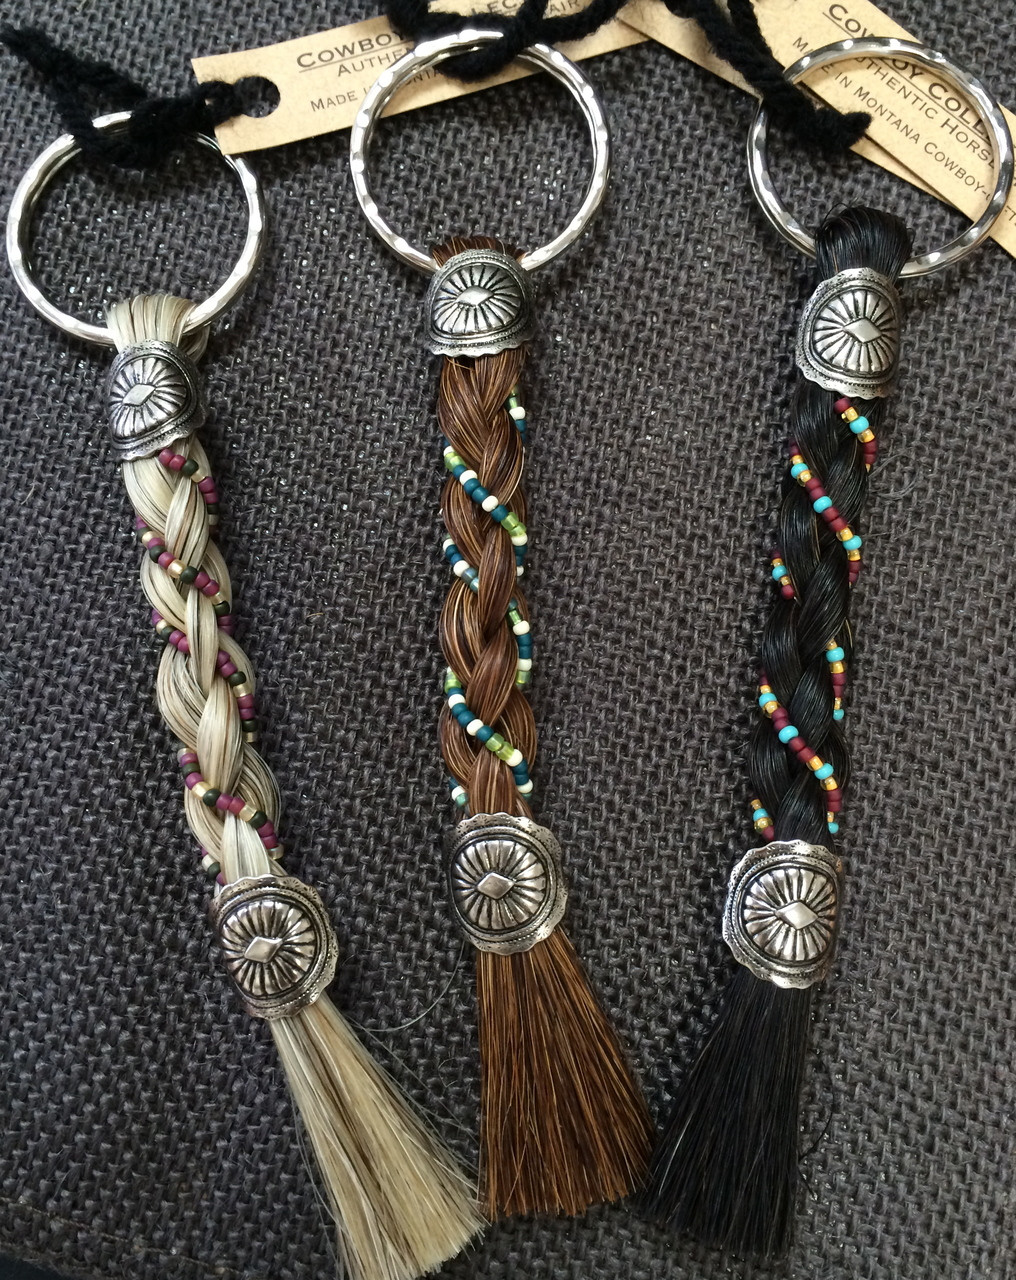 Loading zoom. Horse Hair Key Chains were Cowboy Collectible s first product! fe401e8f5